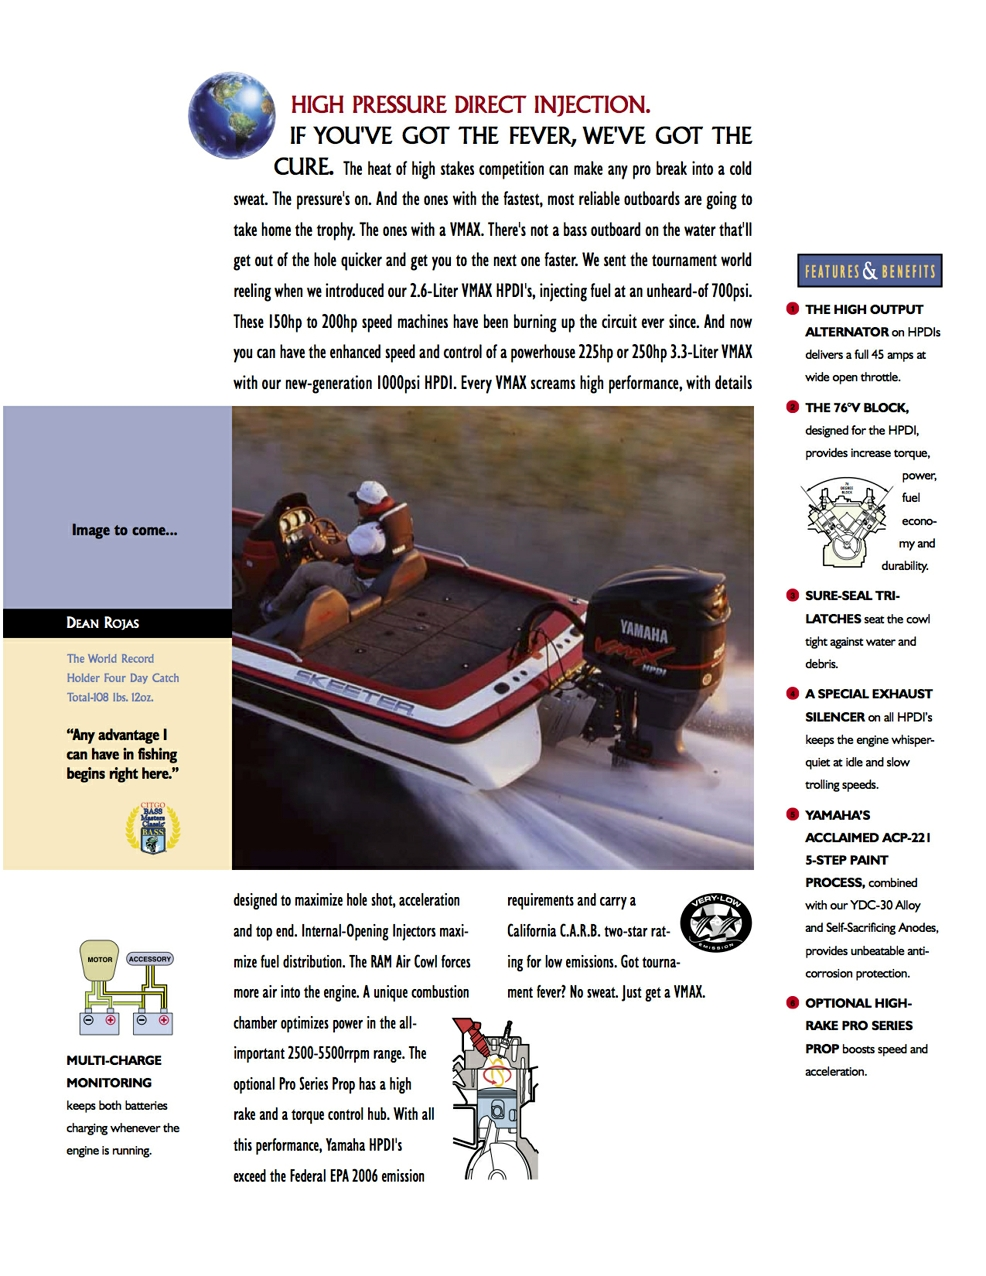 YAMAHA OUTBOARDS Brochure - pattersoncreative